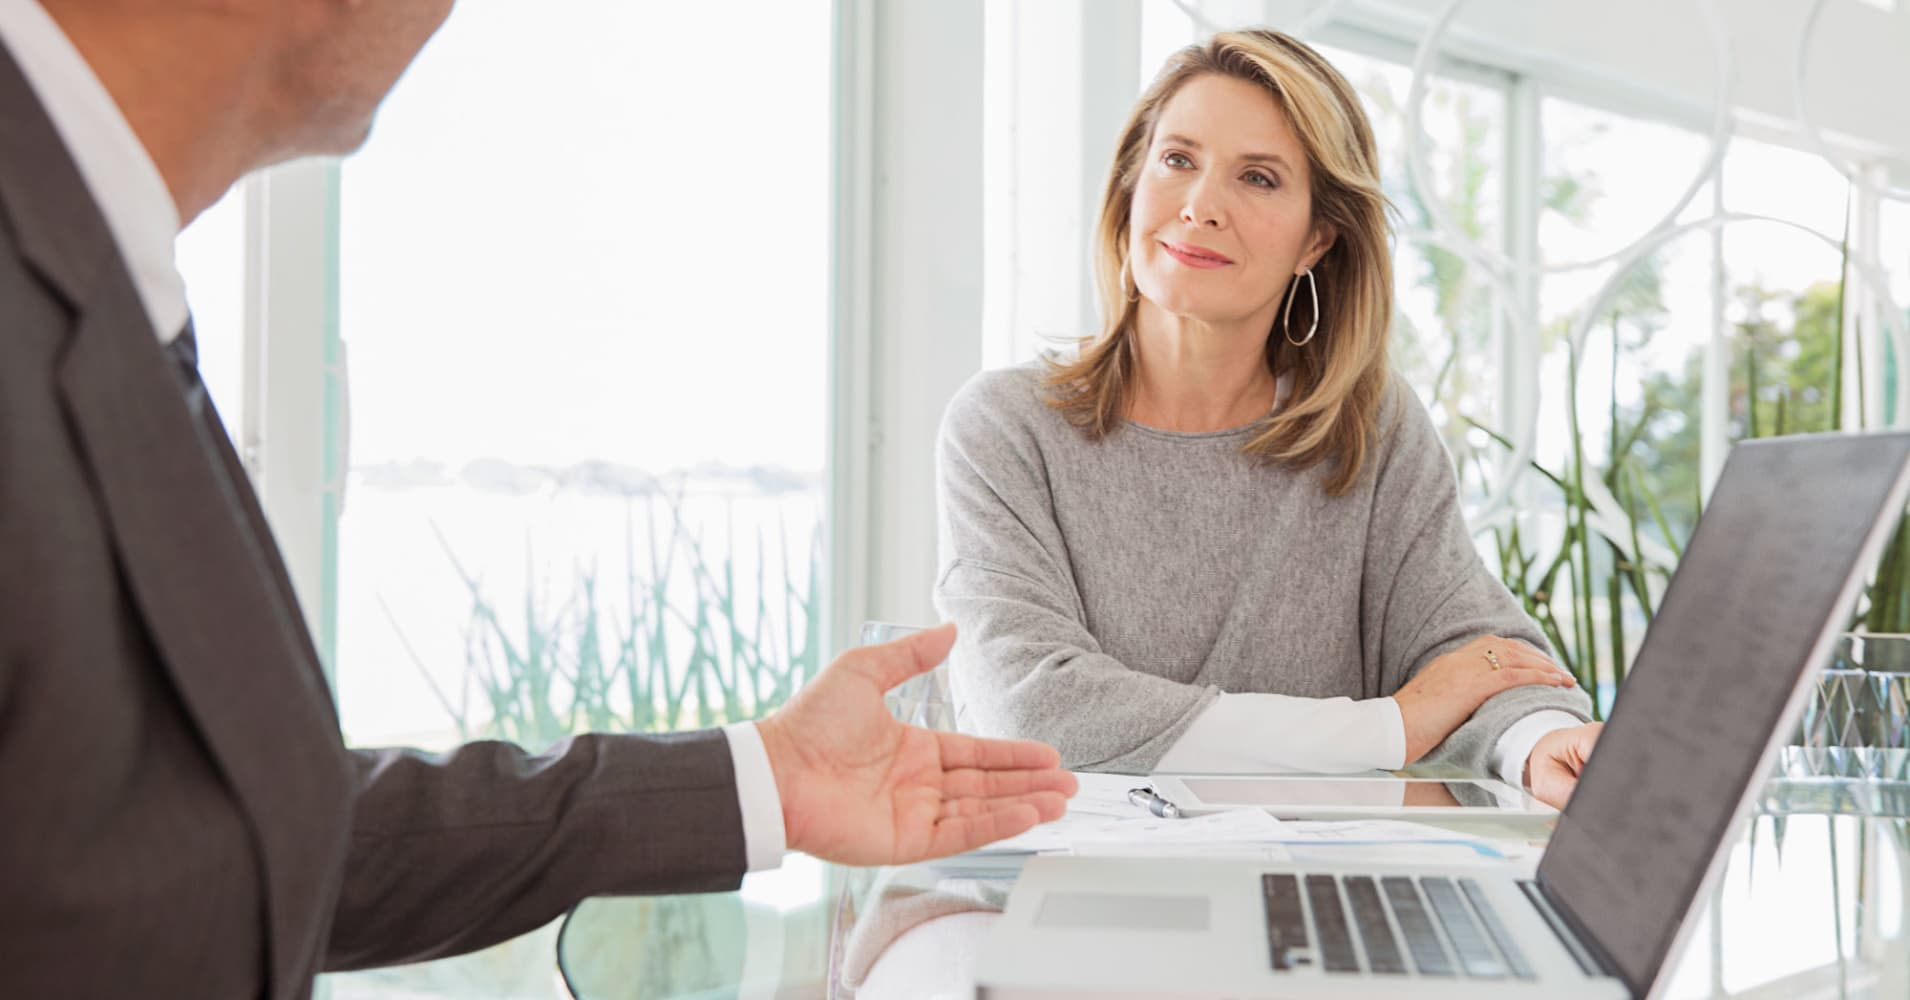 For women, planning for retirement can be a serious financial challenge